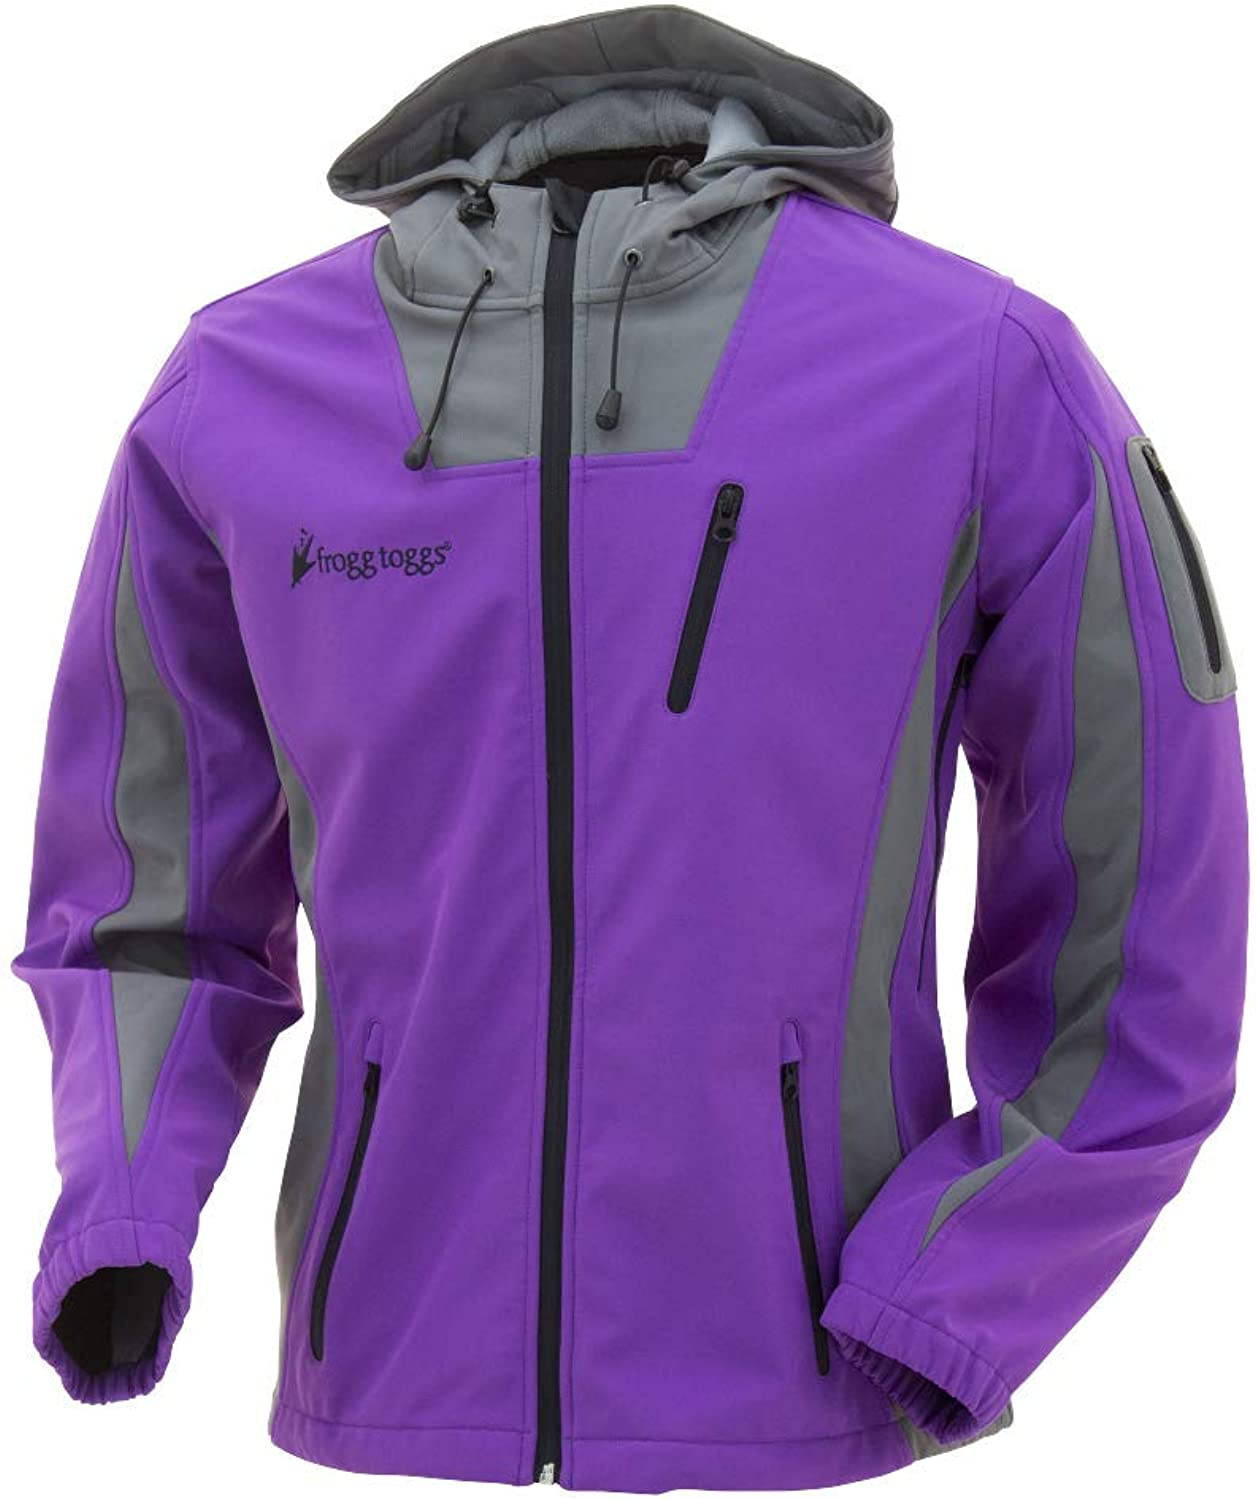 Frogg Toggs Willow Creek Softshell Fleece Jacket, Women's